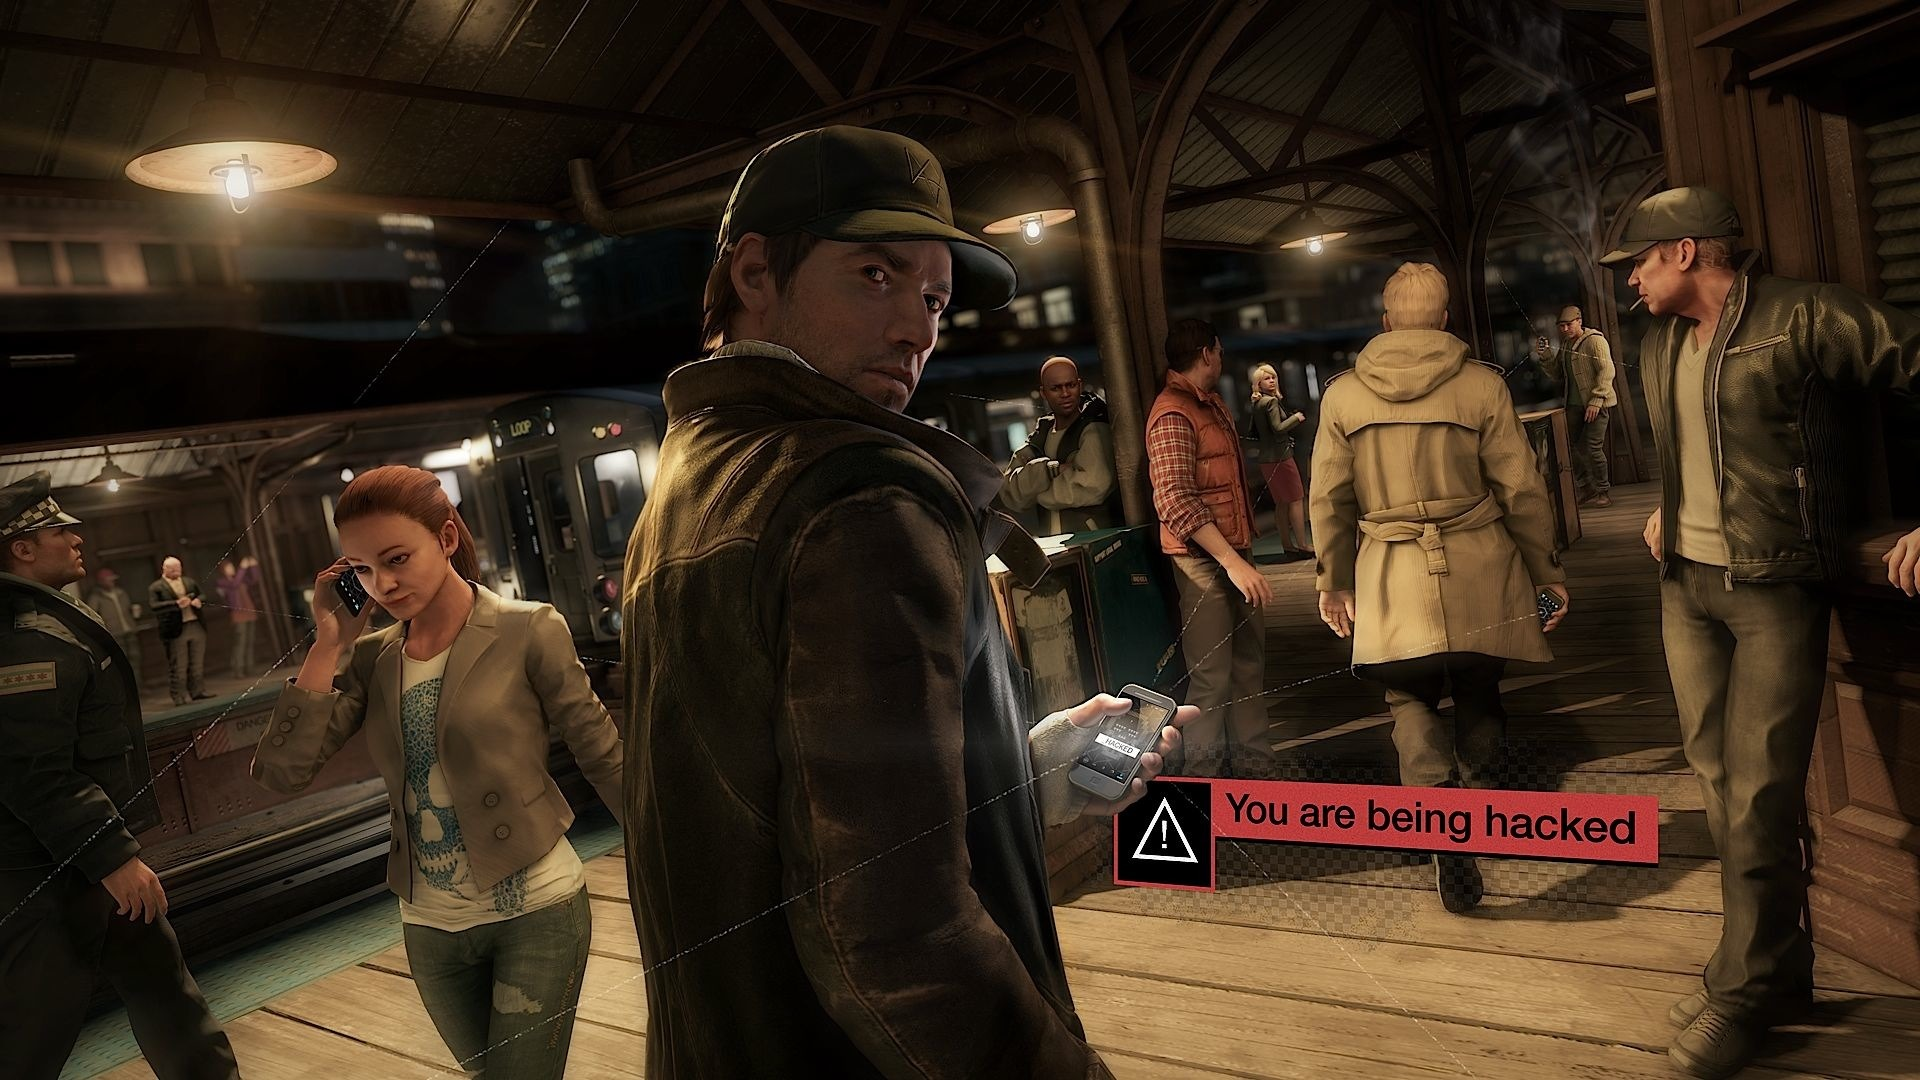 1394141746-watch-dogs-being-hacked.jpg